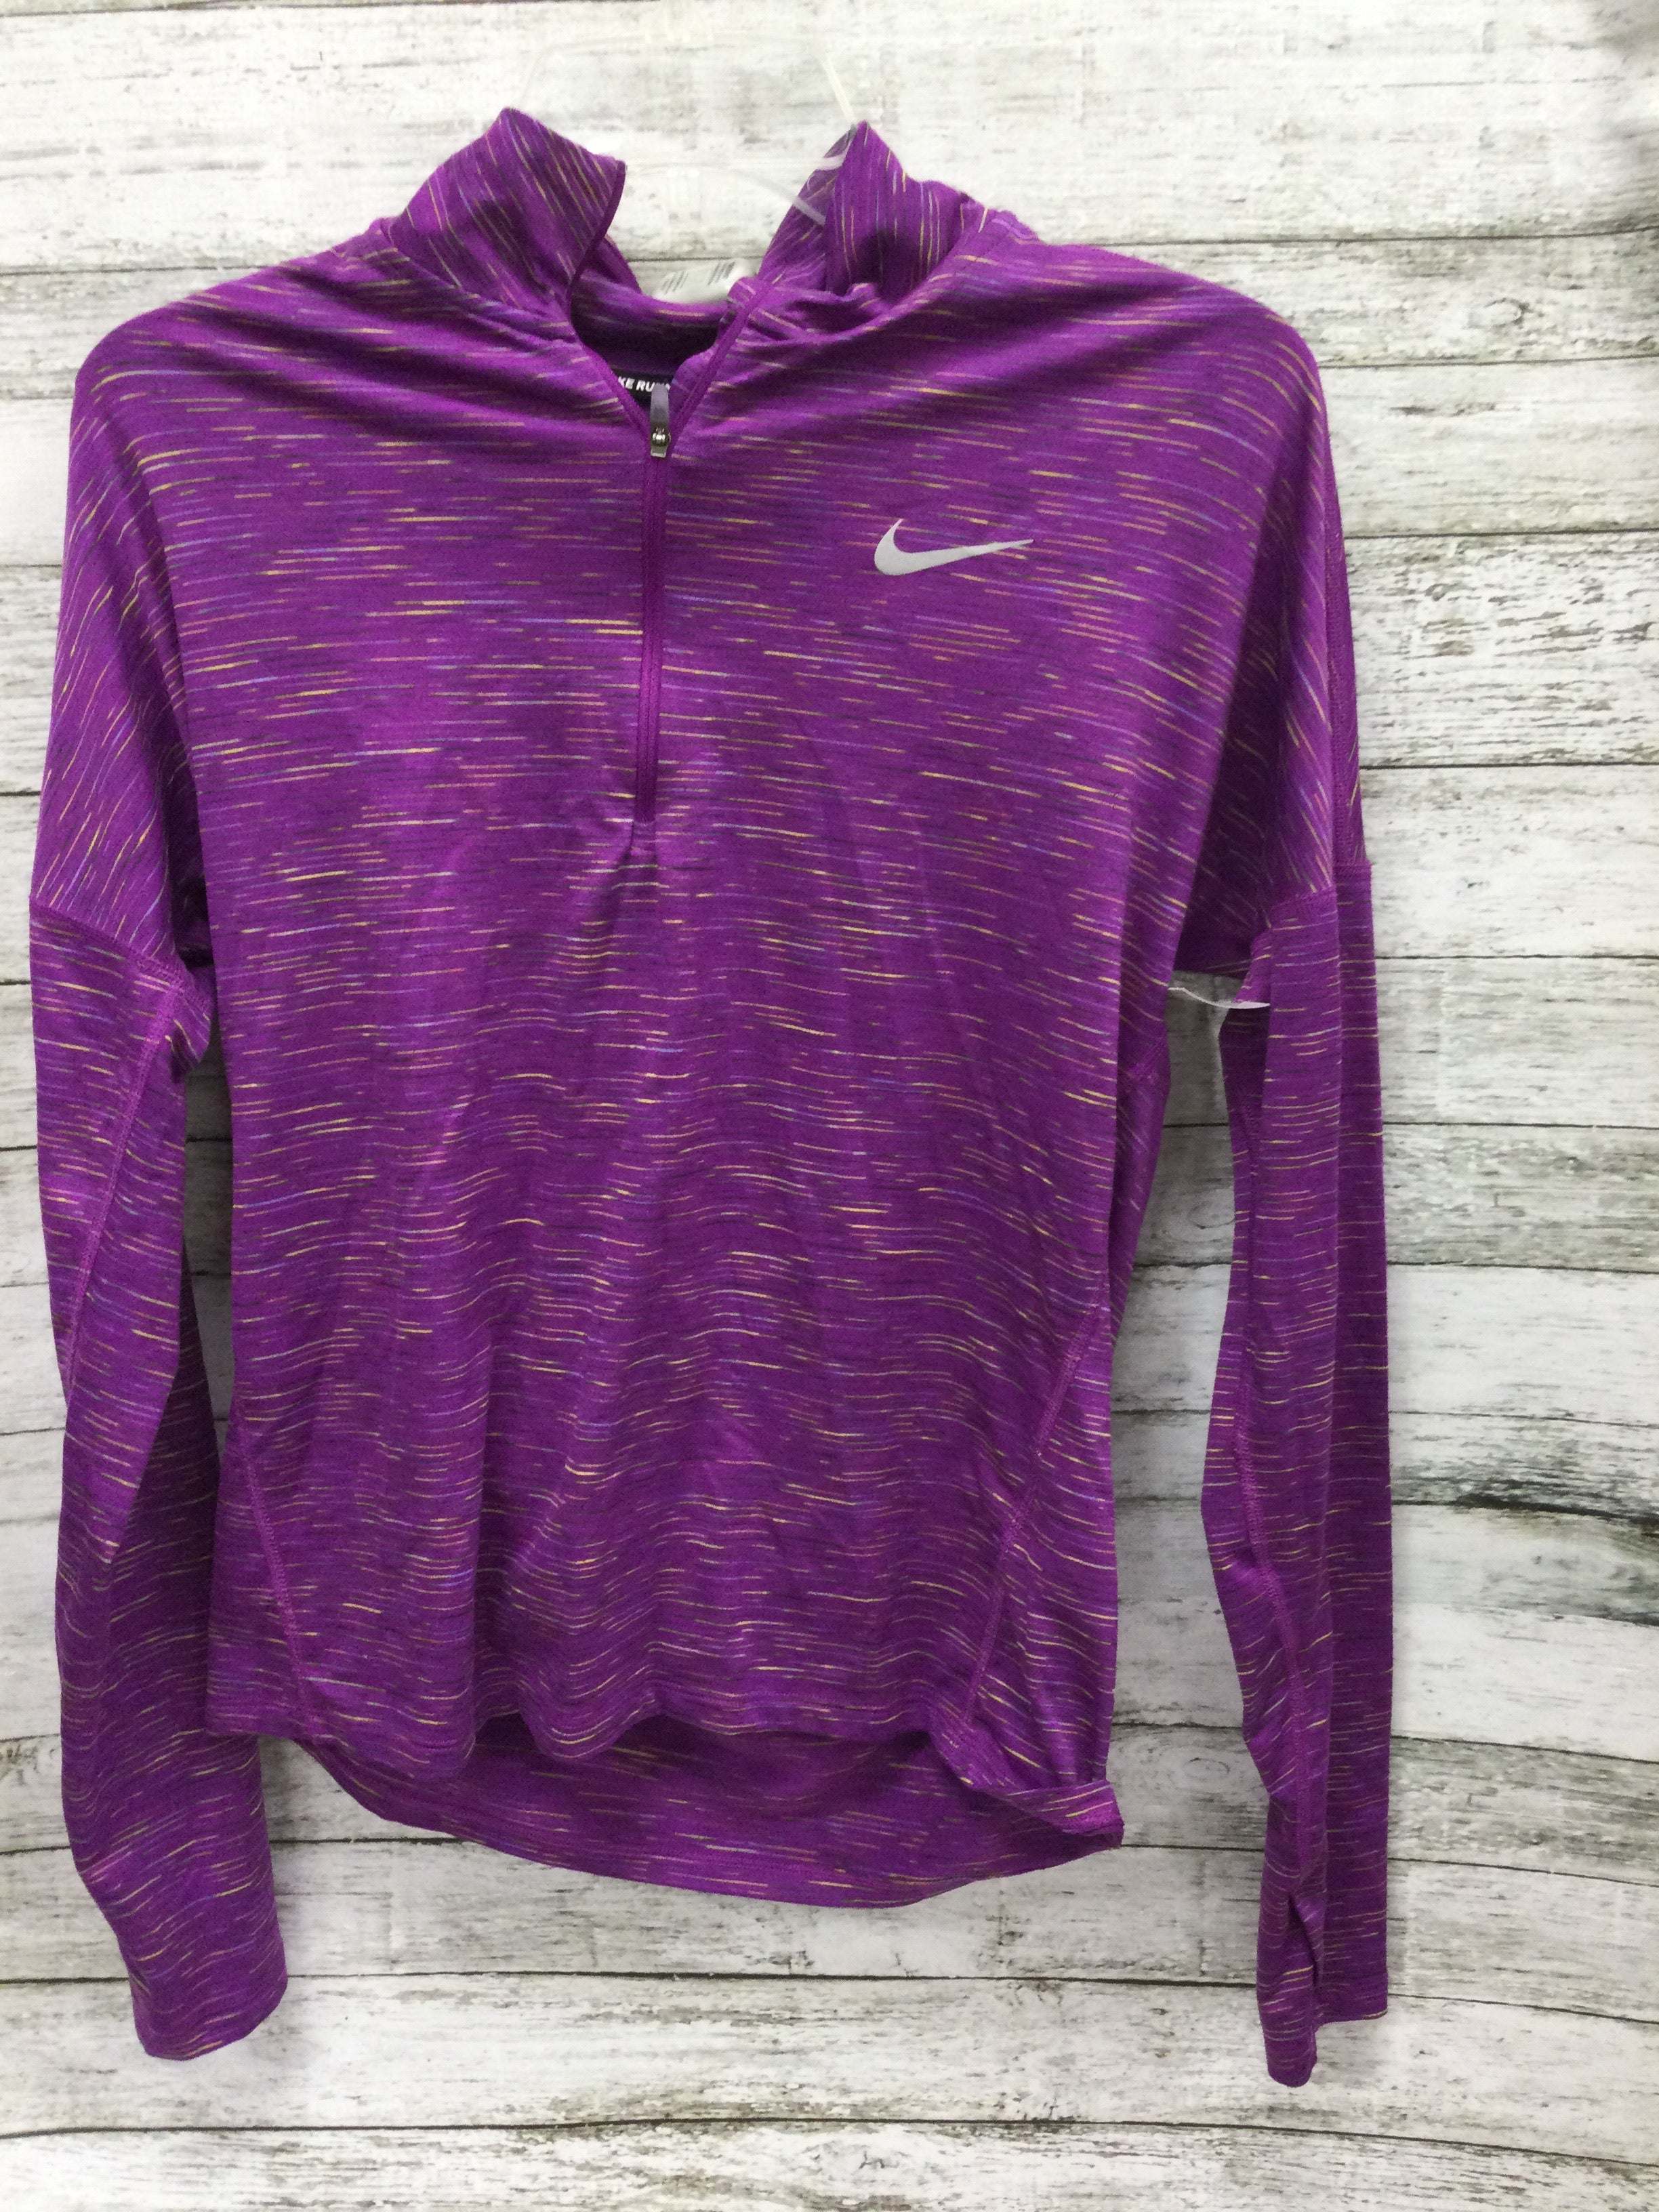 Primary Photo - brand: nike , style: athletic top , color: purple , size: s , sku: 127-4876-17807